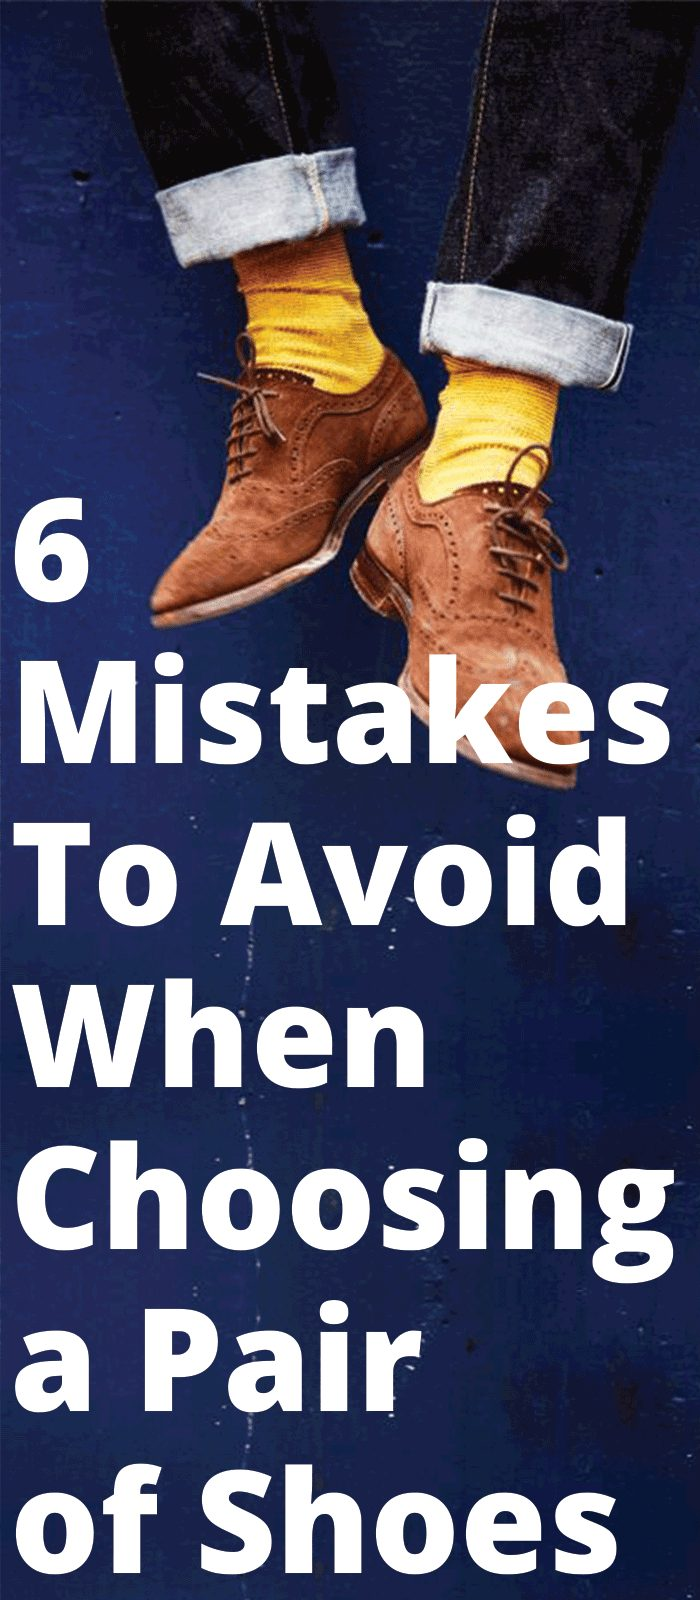 6 Mistakes To Avoid When Choosing a Pair of Shoes